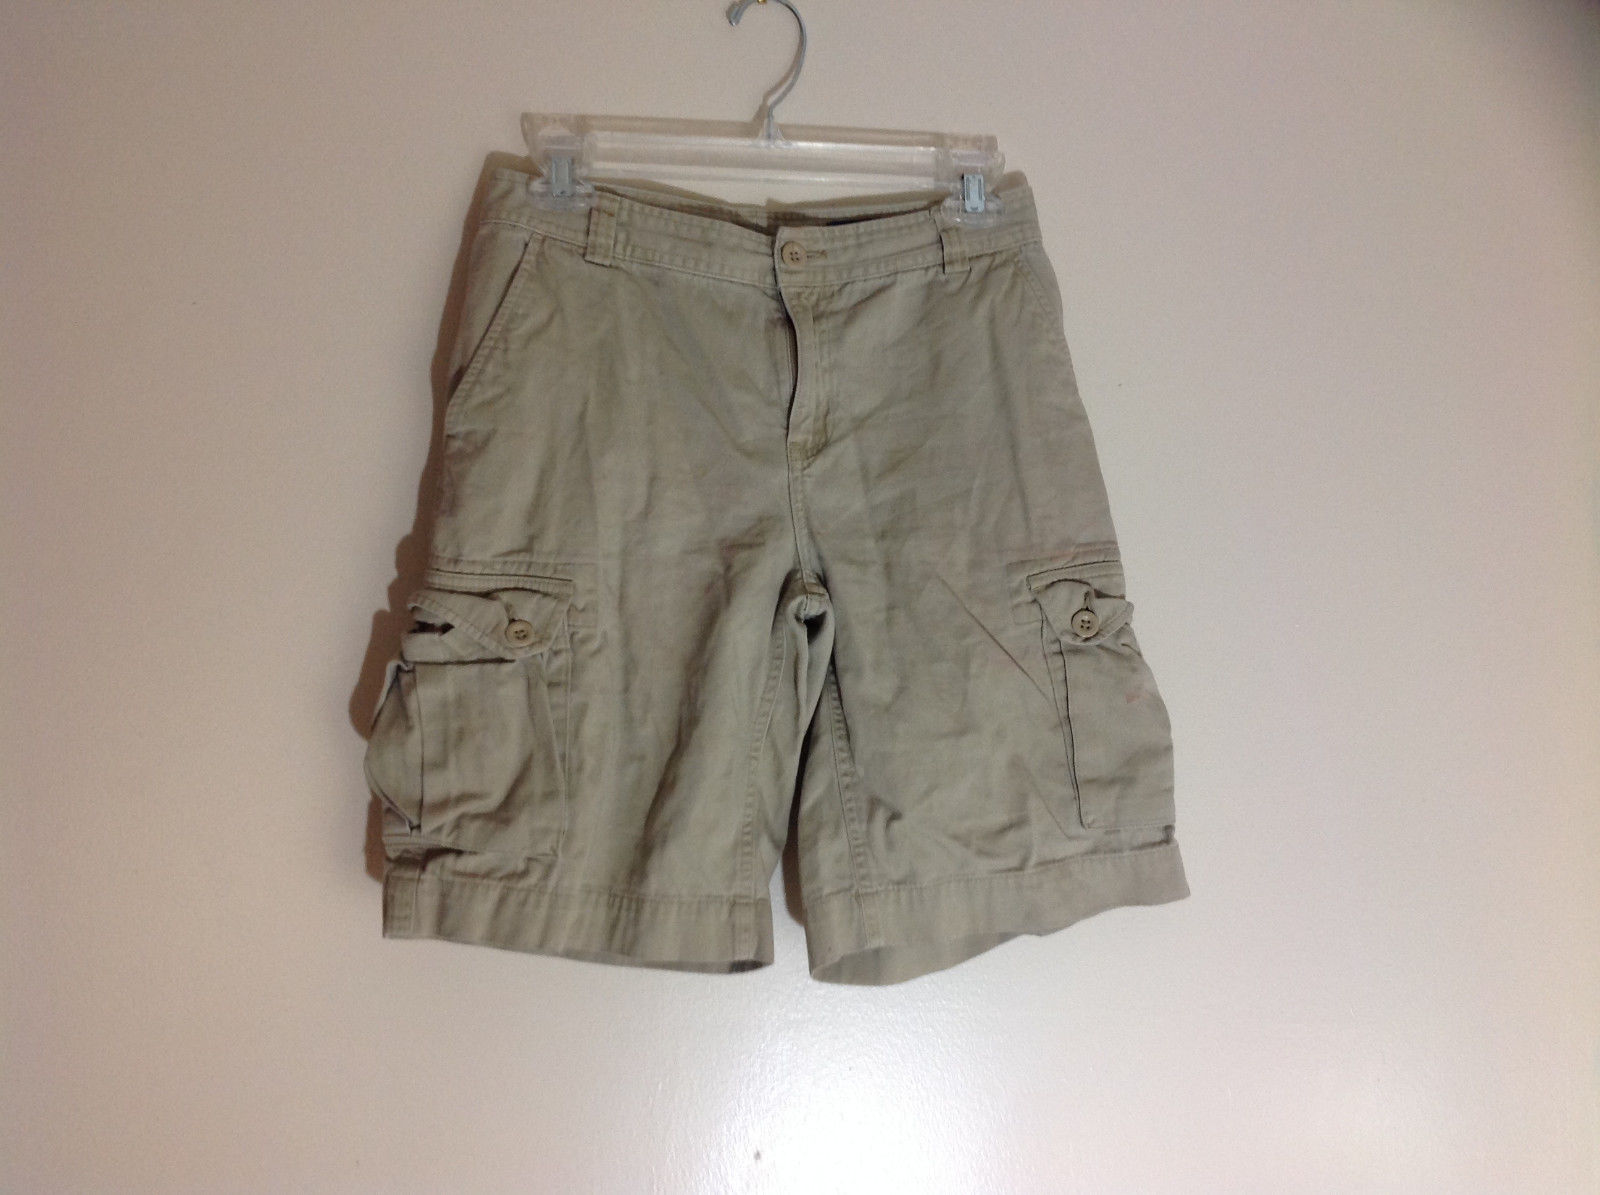 Polo by Ralph Lauren Khaki Cargo Shorts 6 pockets Zip and Button Closure Size 14